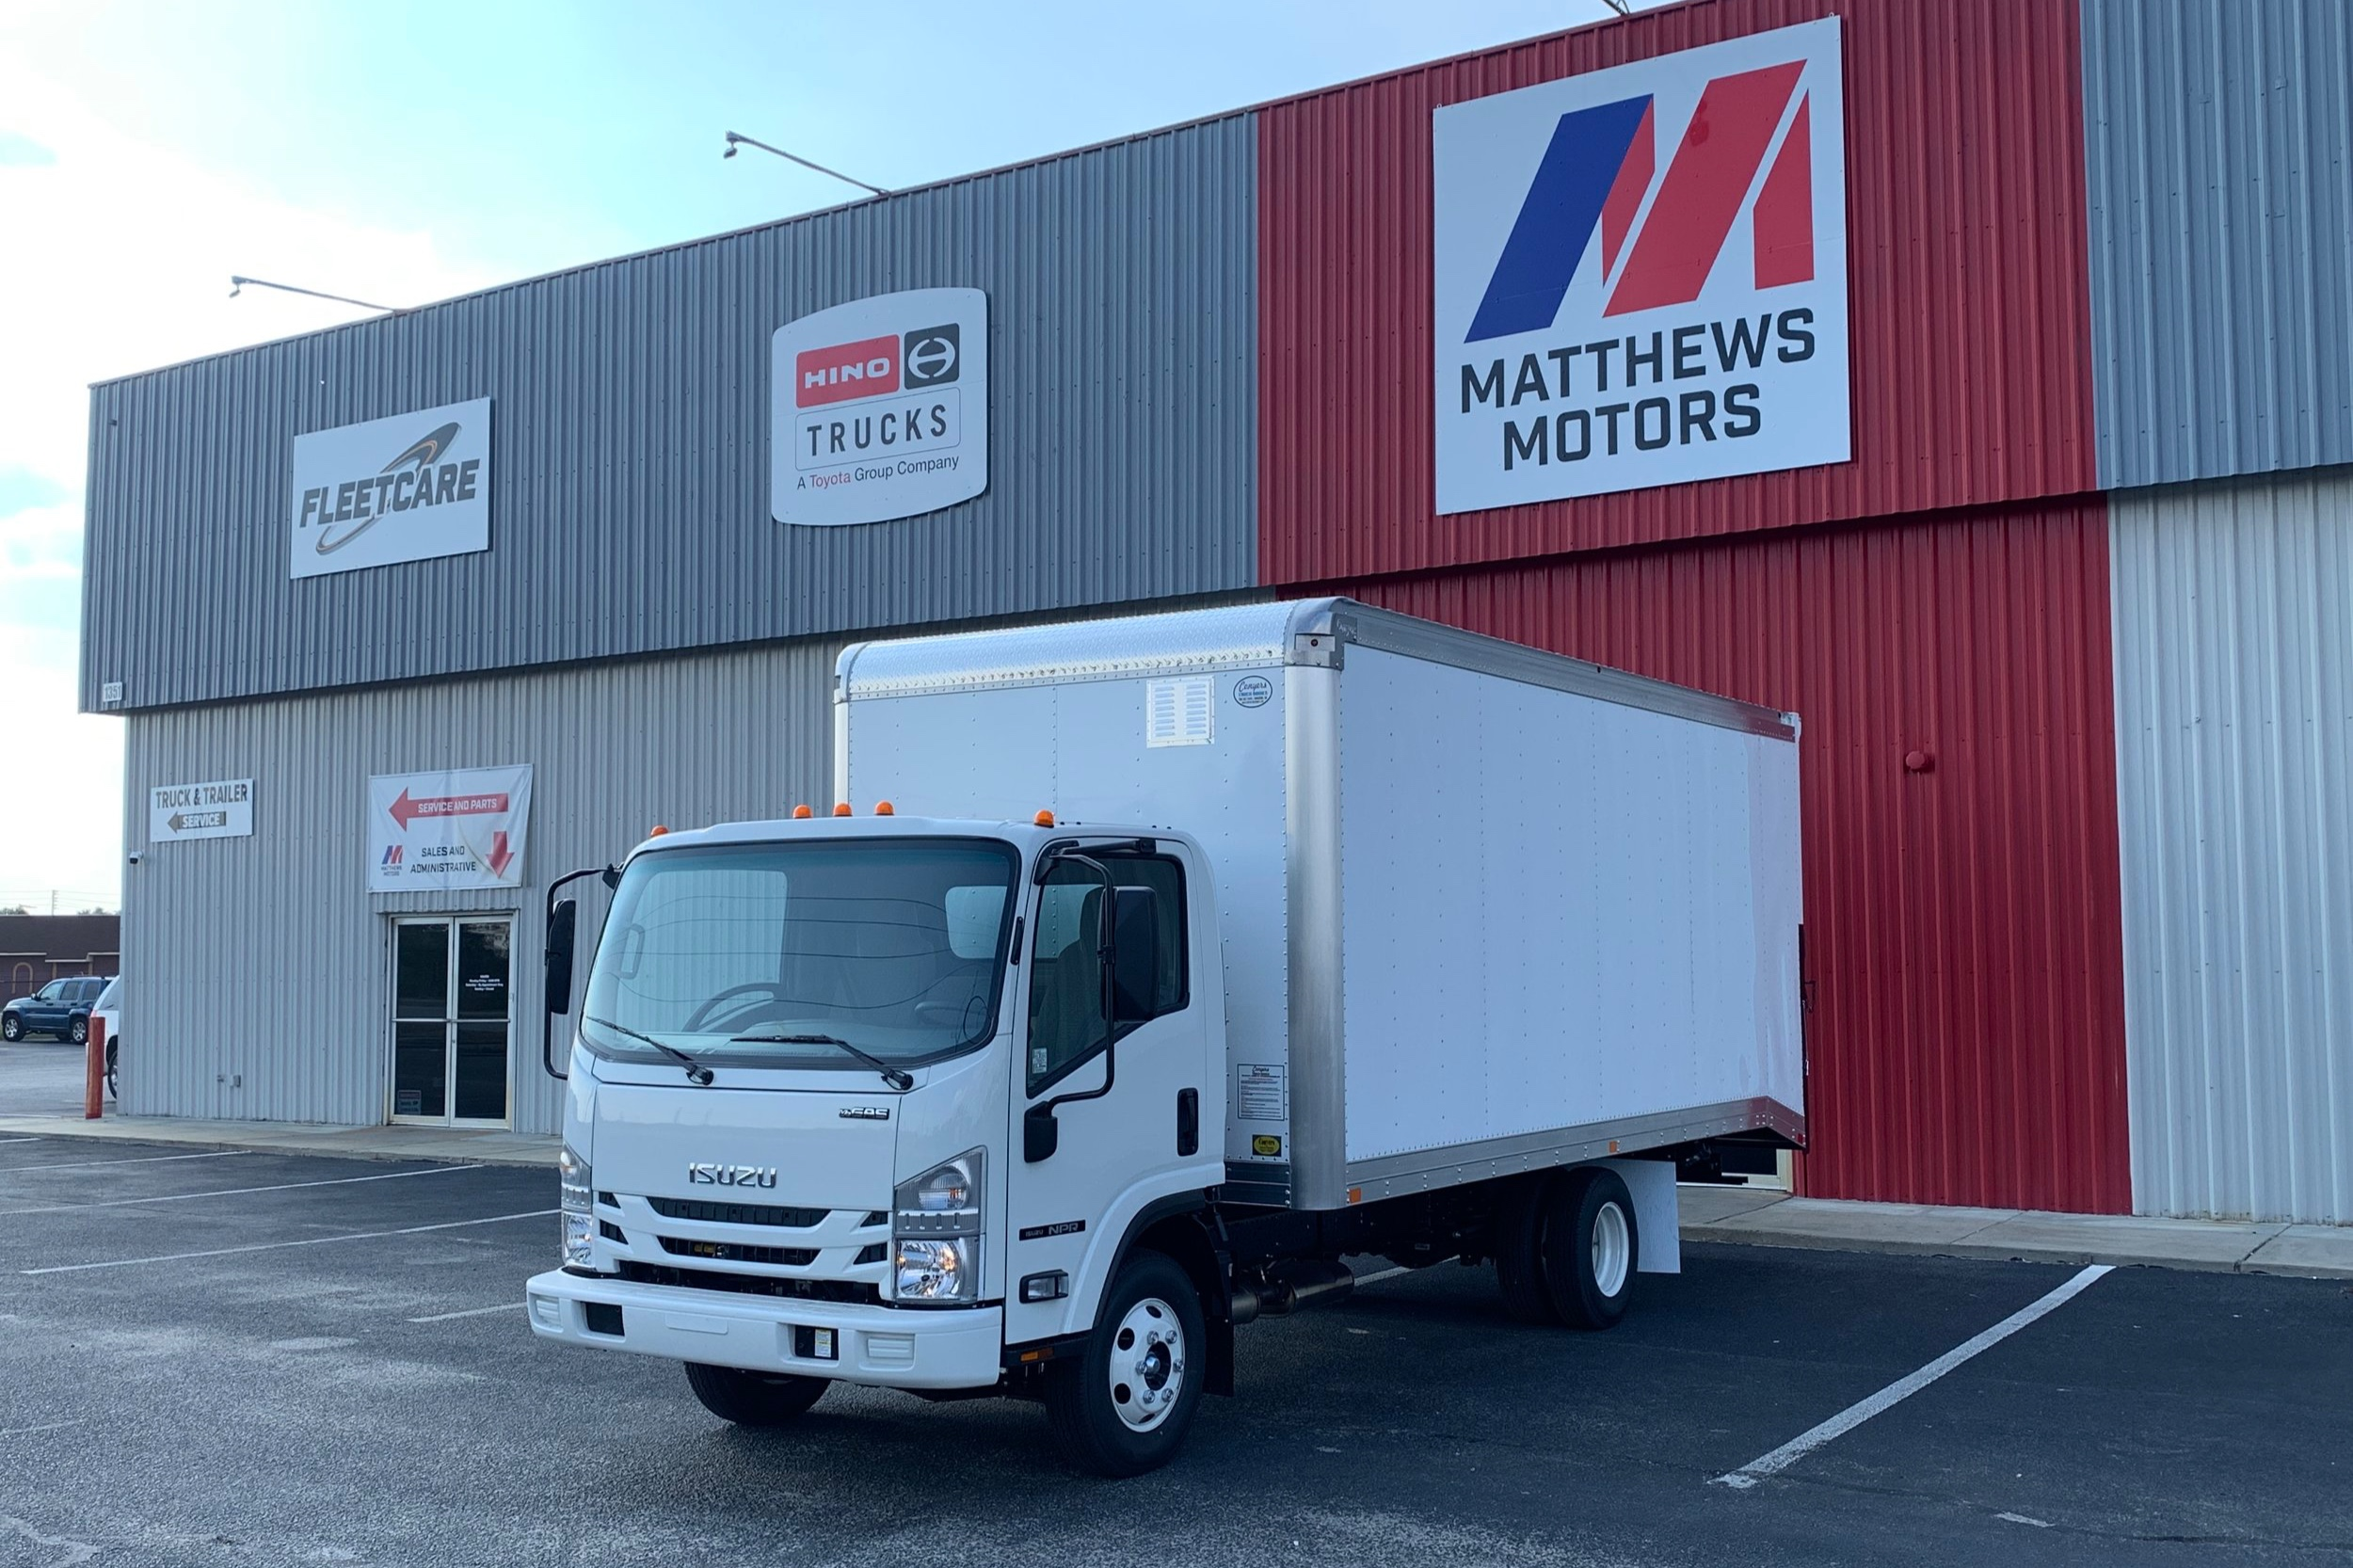 2019 Isuzu NPR Gas with 18' Vanscaper - Stock No: N2165Price: $45,960Financing Options: $760/Mo. for 72 Mo. or $815/Mo. for 60 Mo. (Tag and Taxes Down)Class 4: 14,001 - 16,000 lbCategory: VanscaperCab Type: Cab OverEngine Make: IsuzuEngine Size: 6.0L GasFuel Type: GasolineVIN: 54DB4W1B9KS808821